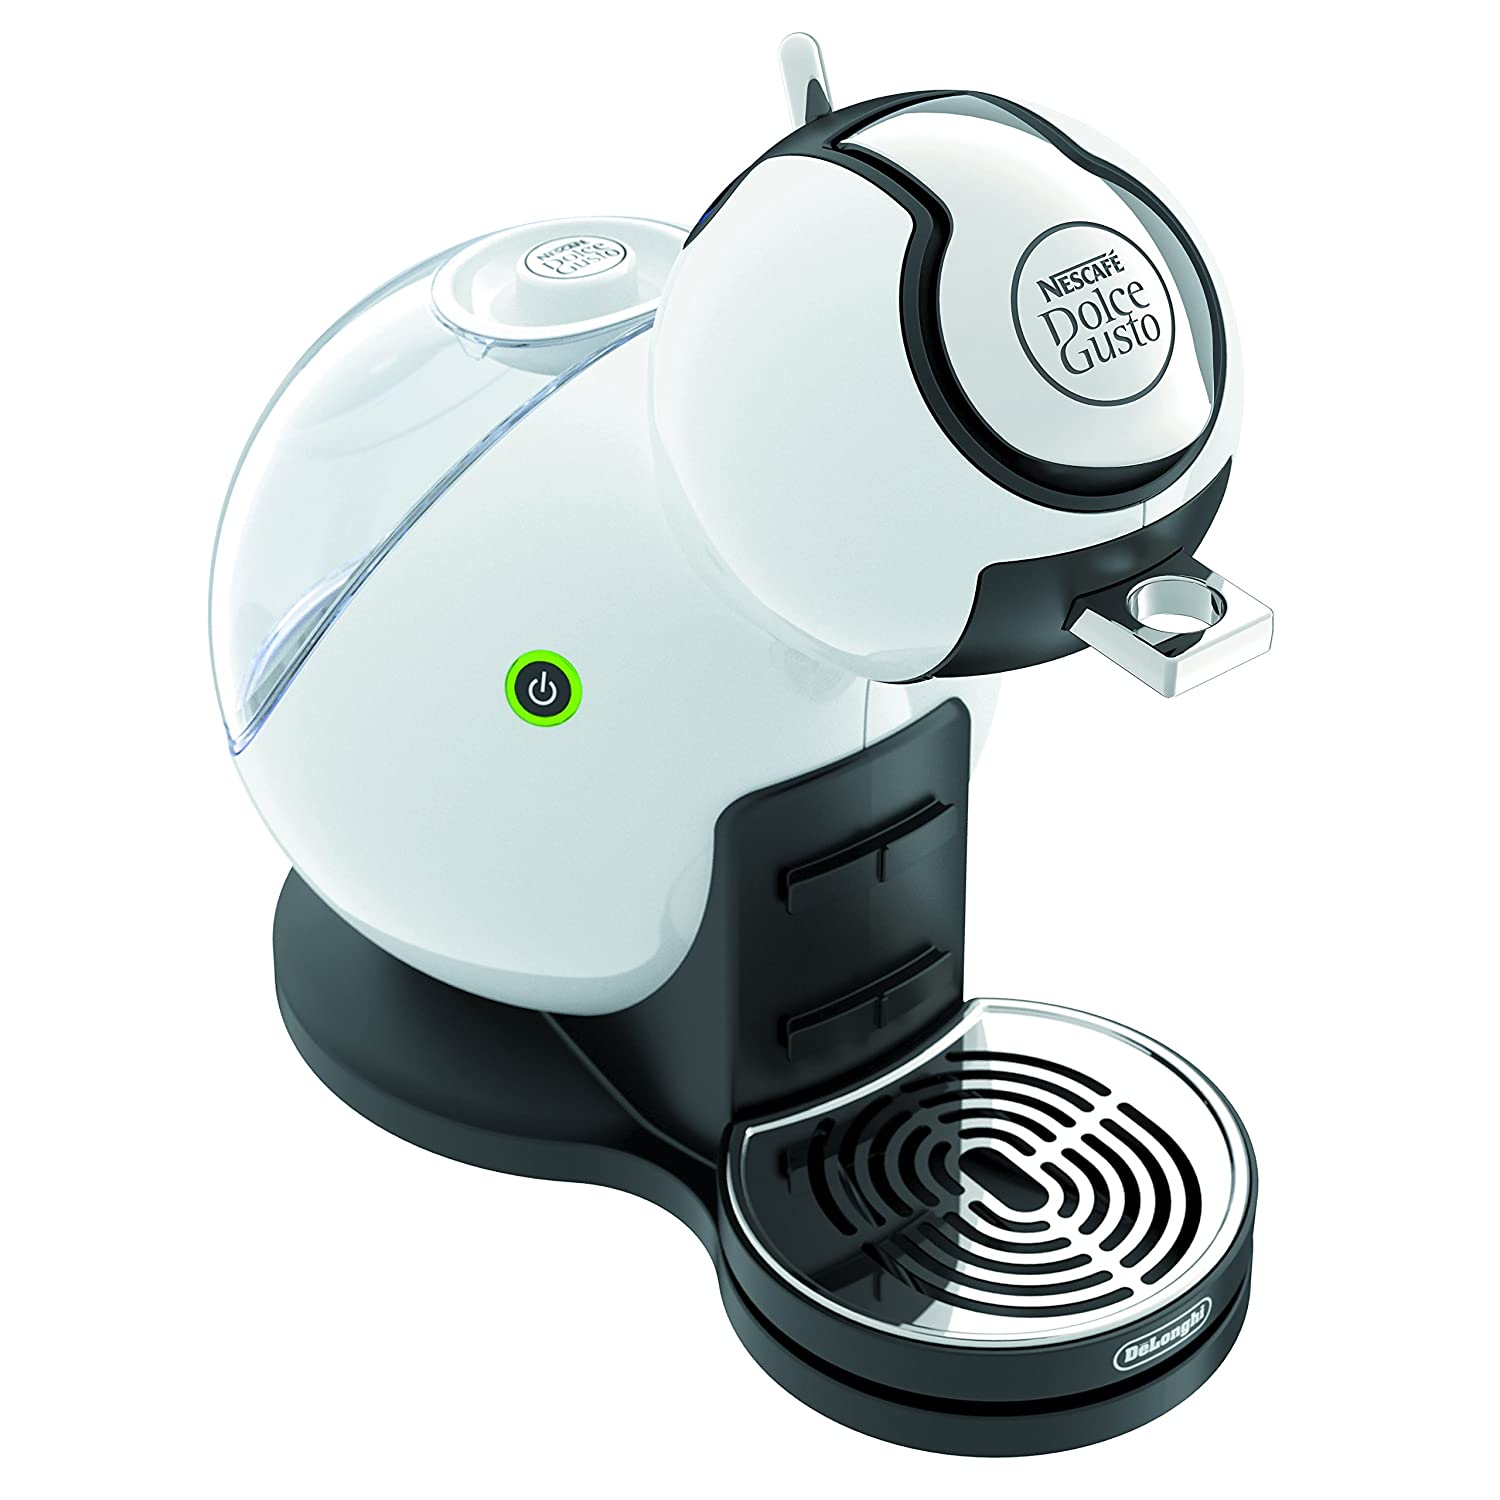 Delonghi Dolce Gusto Melody 3 - Máquina de café (Expresso, 15 Bar), color blanco: Amazon.es: Hogar